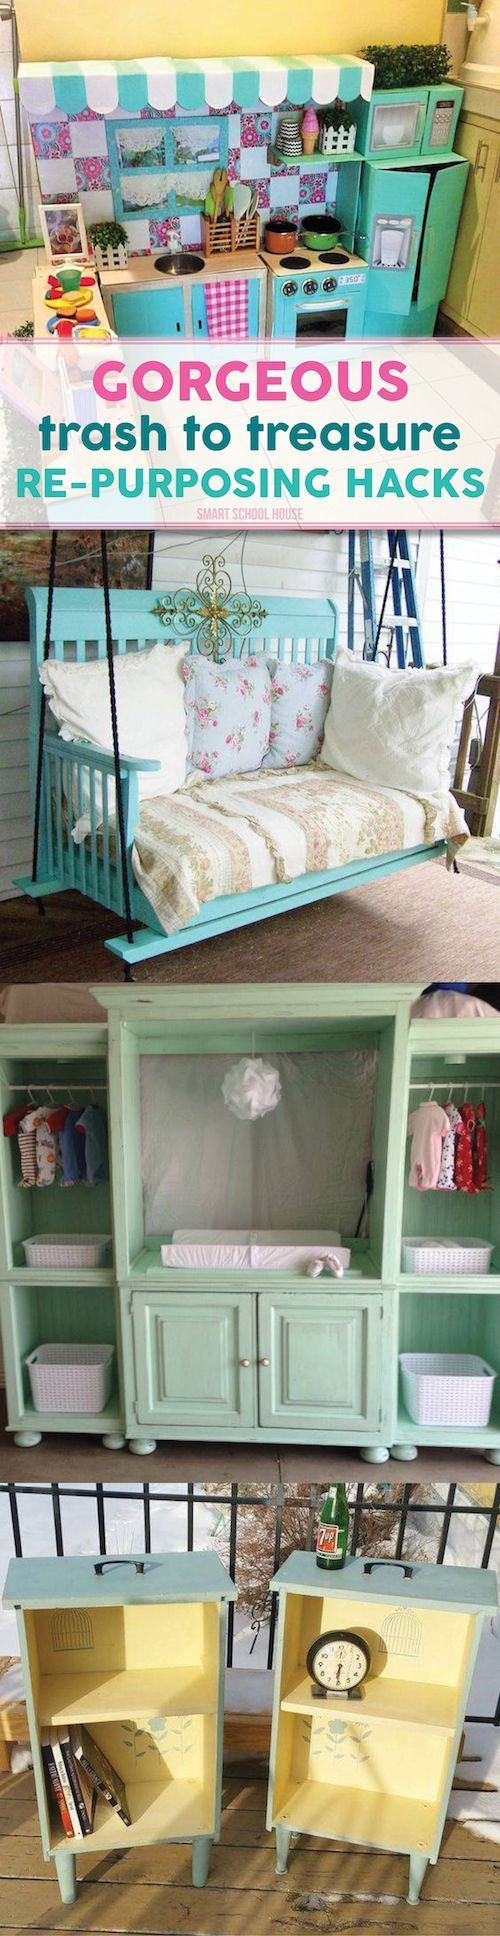 432 best repurpose images on pinterest creative ideas recycling